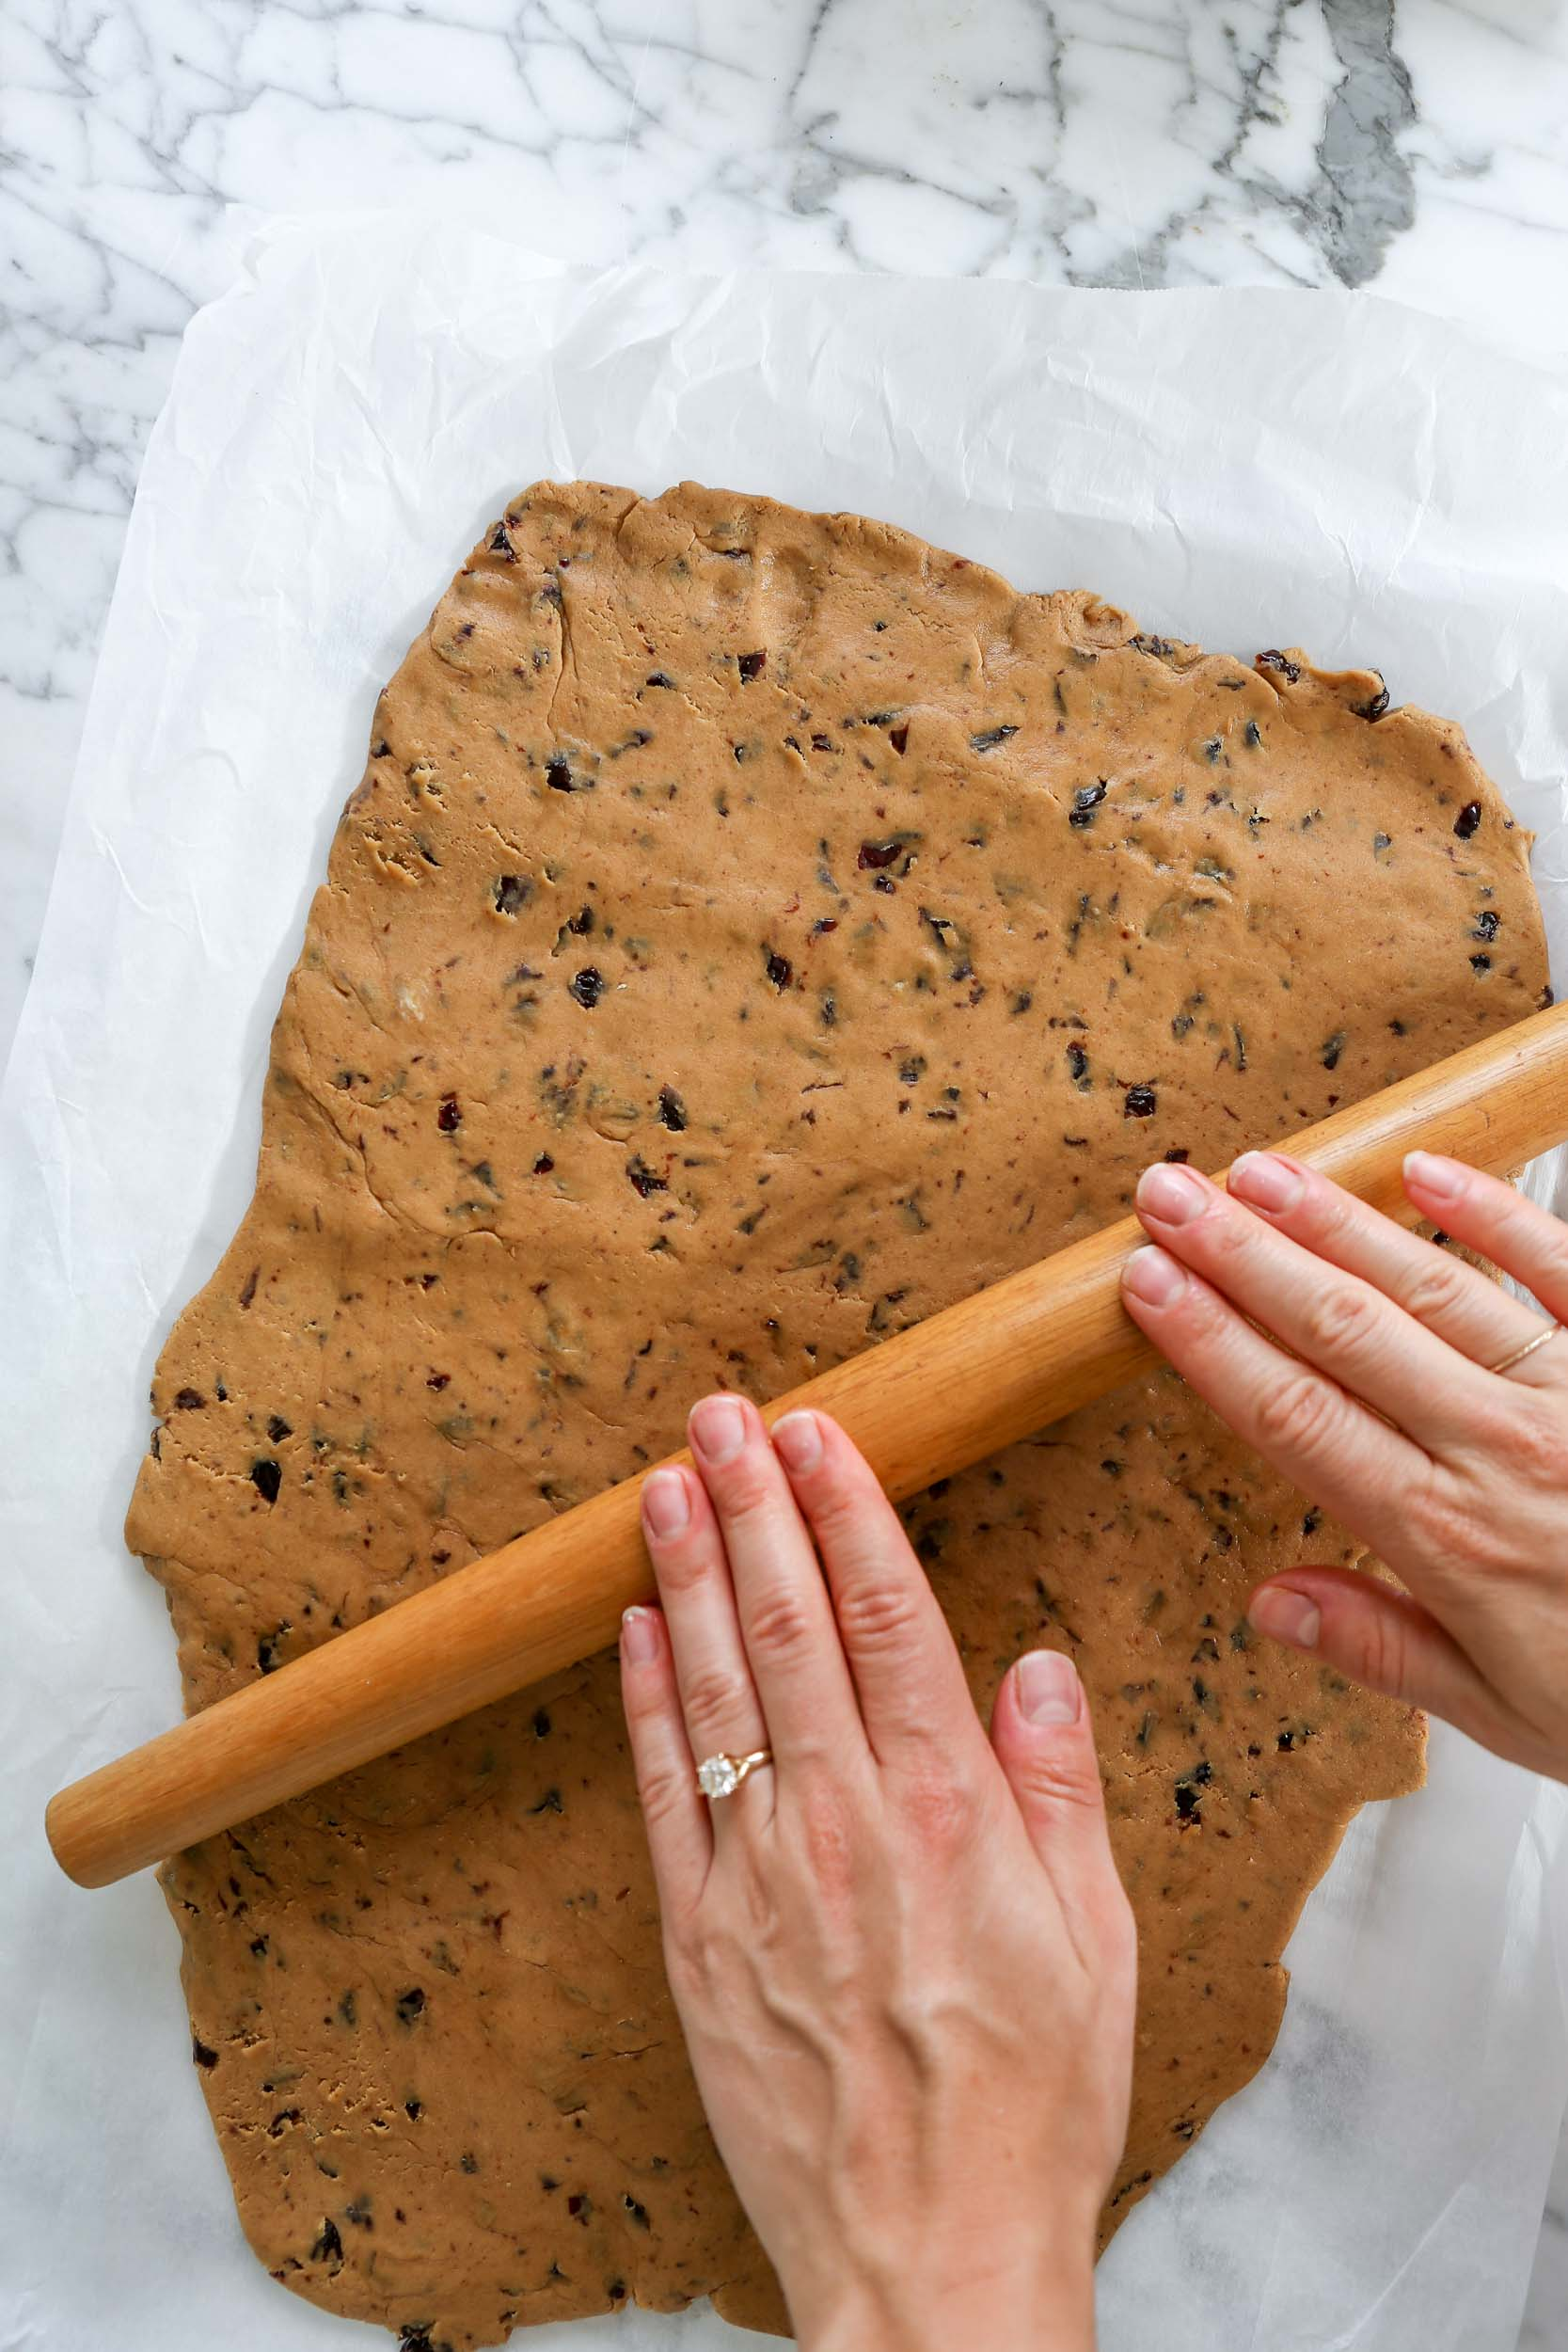 cookie dough spread onto a parchment lined baking sheet